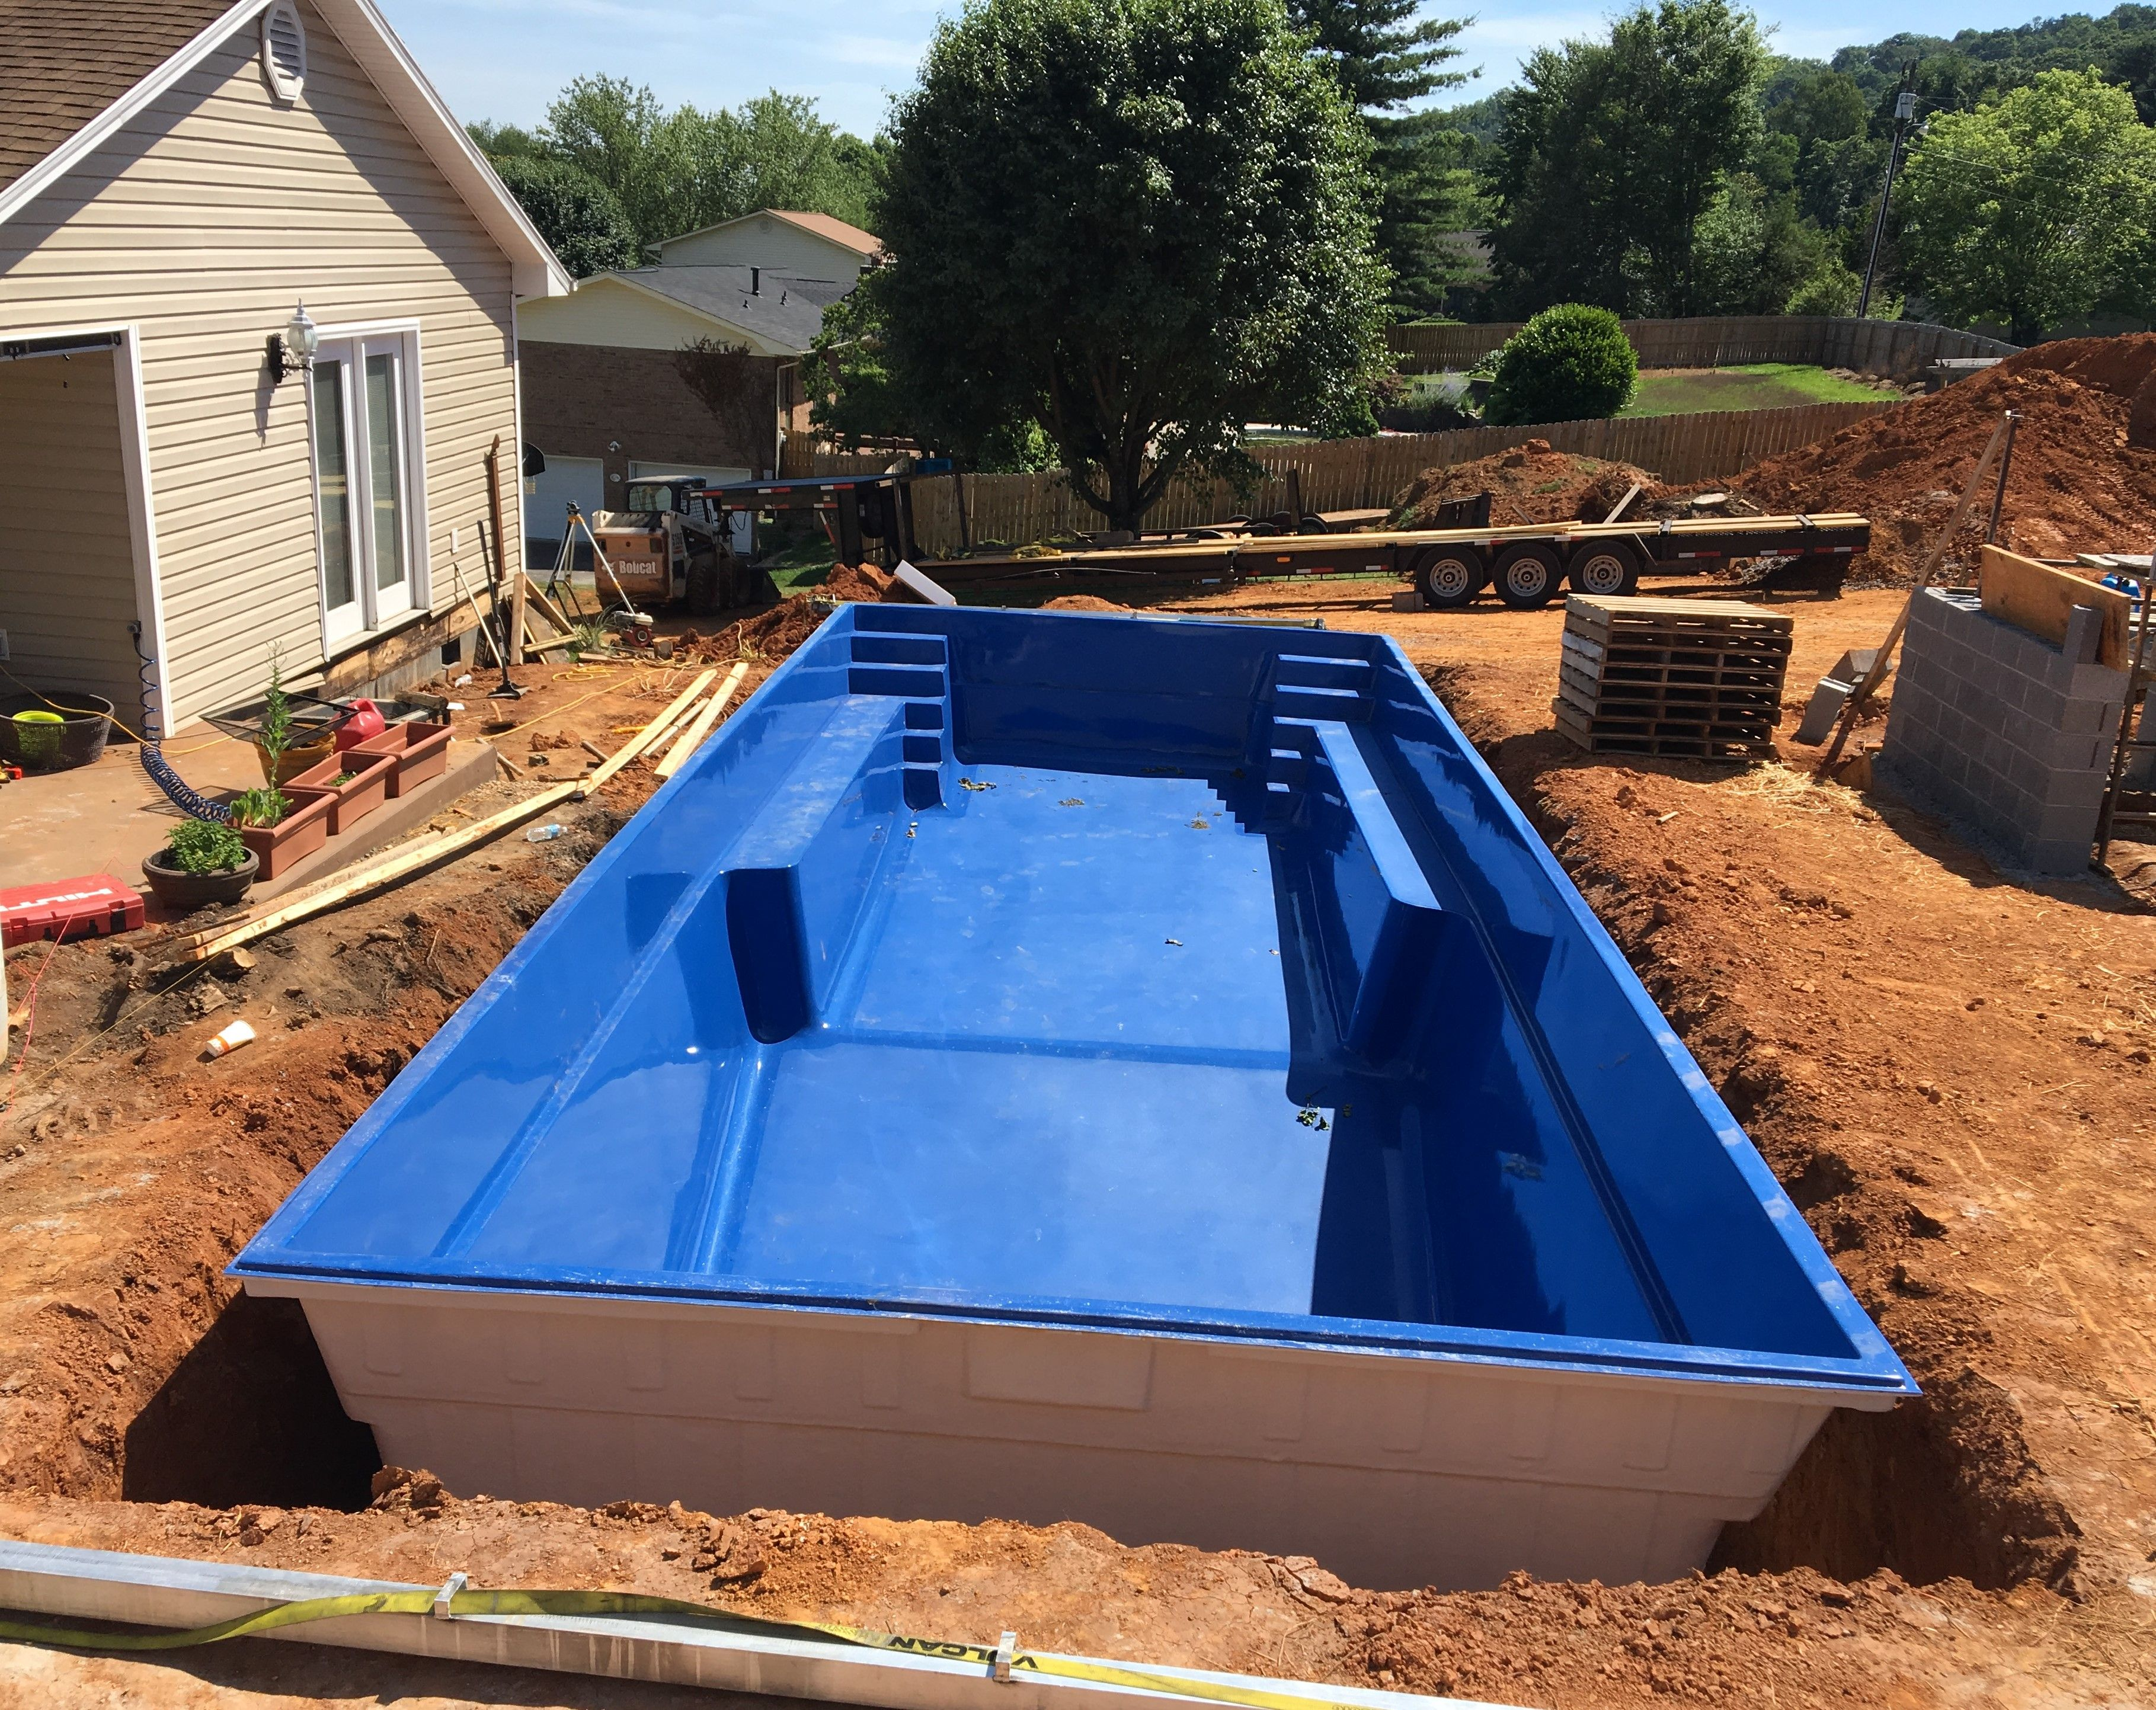 The Very First Leisure Pools Infinity Design Has Been Delivered And Was Ready To Be Set Into Its New Home But Her Swimming Pools Backyard Leisure Pools Pool